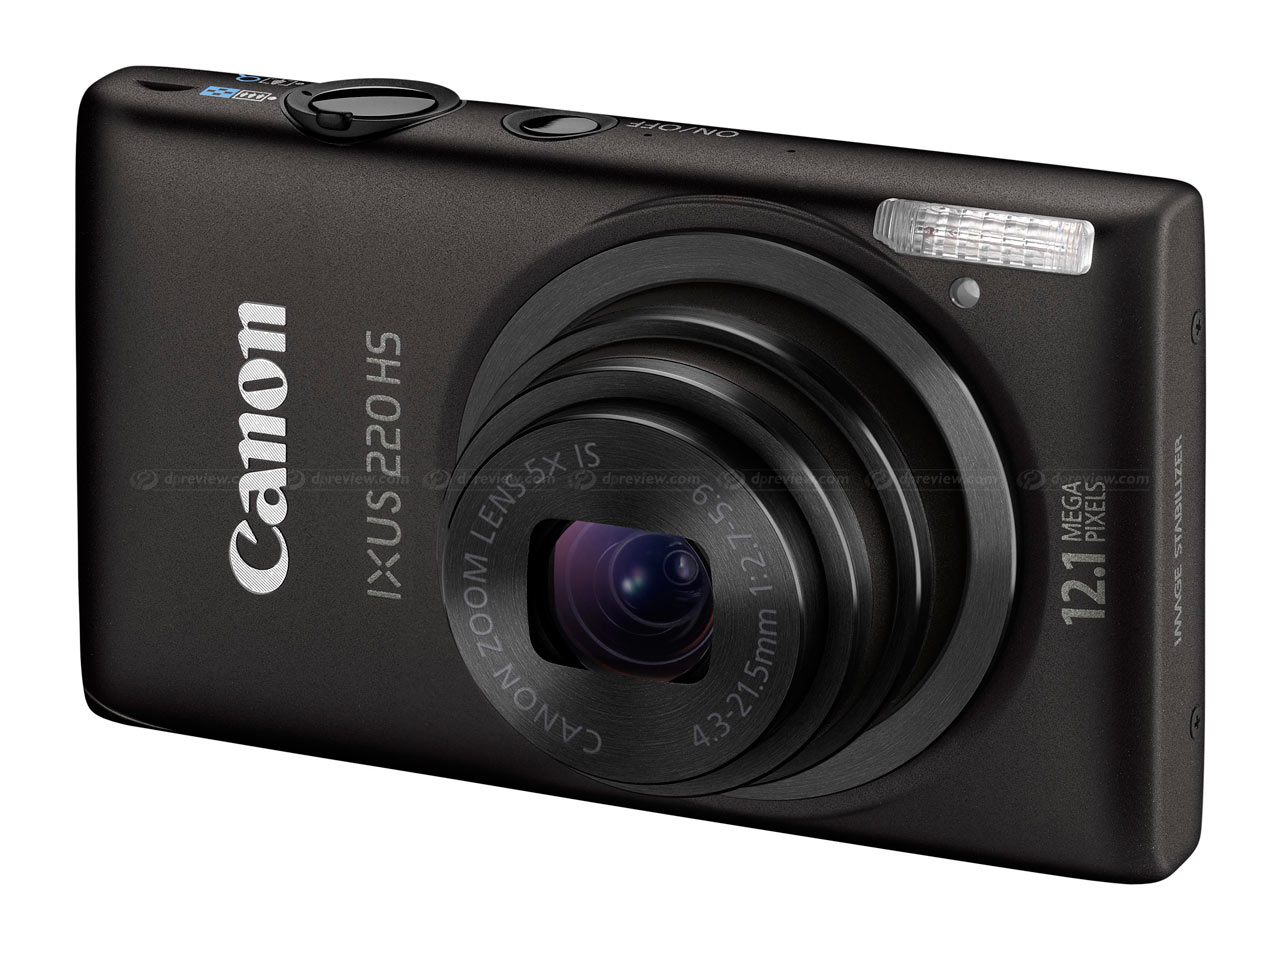 canon announces elph 300 hs ixus 220 hs ultra compact digital rh dpreview com canon powershot elph 300 hs user manual canon elph 300 hs user manual